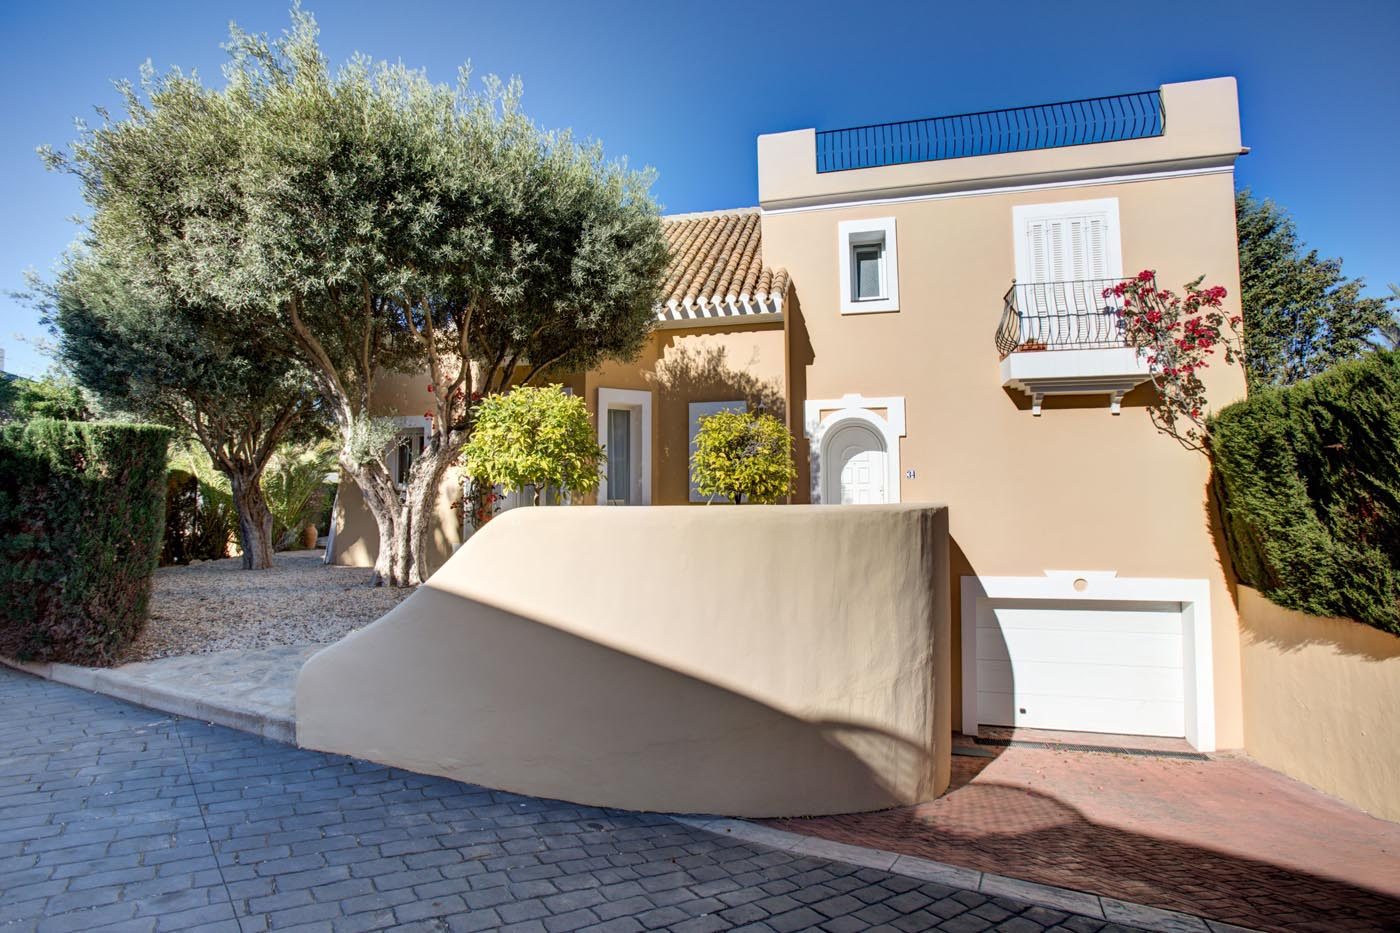 5 Bedroom Private Villa with an Unbeatable Price £625.000